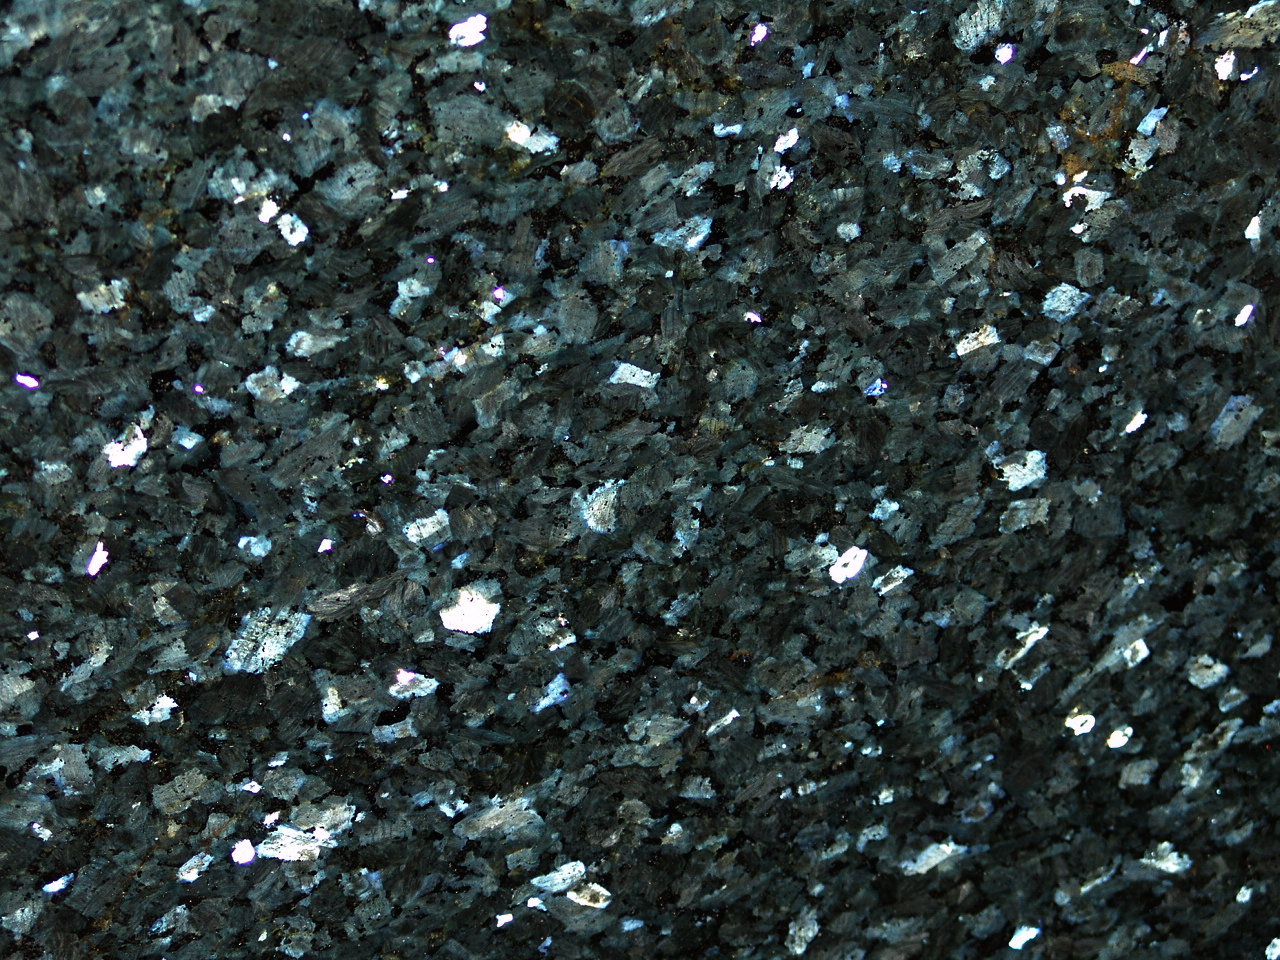 Emerald Pearl Granite : IMAGE , PICTURE , PHOTO of granites 3 - Emerald pearl, Indian red ...